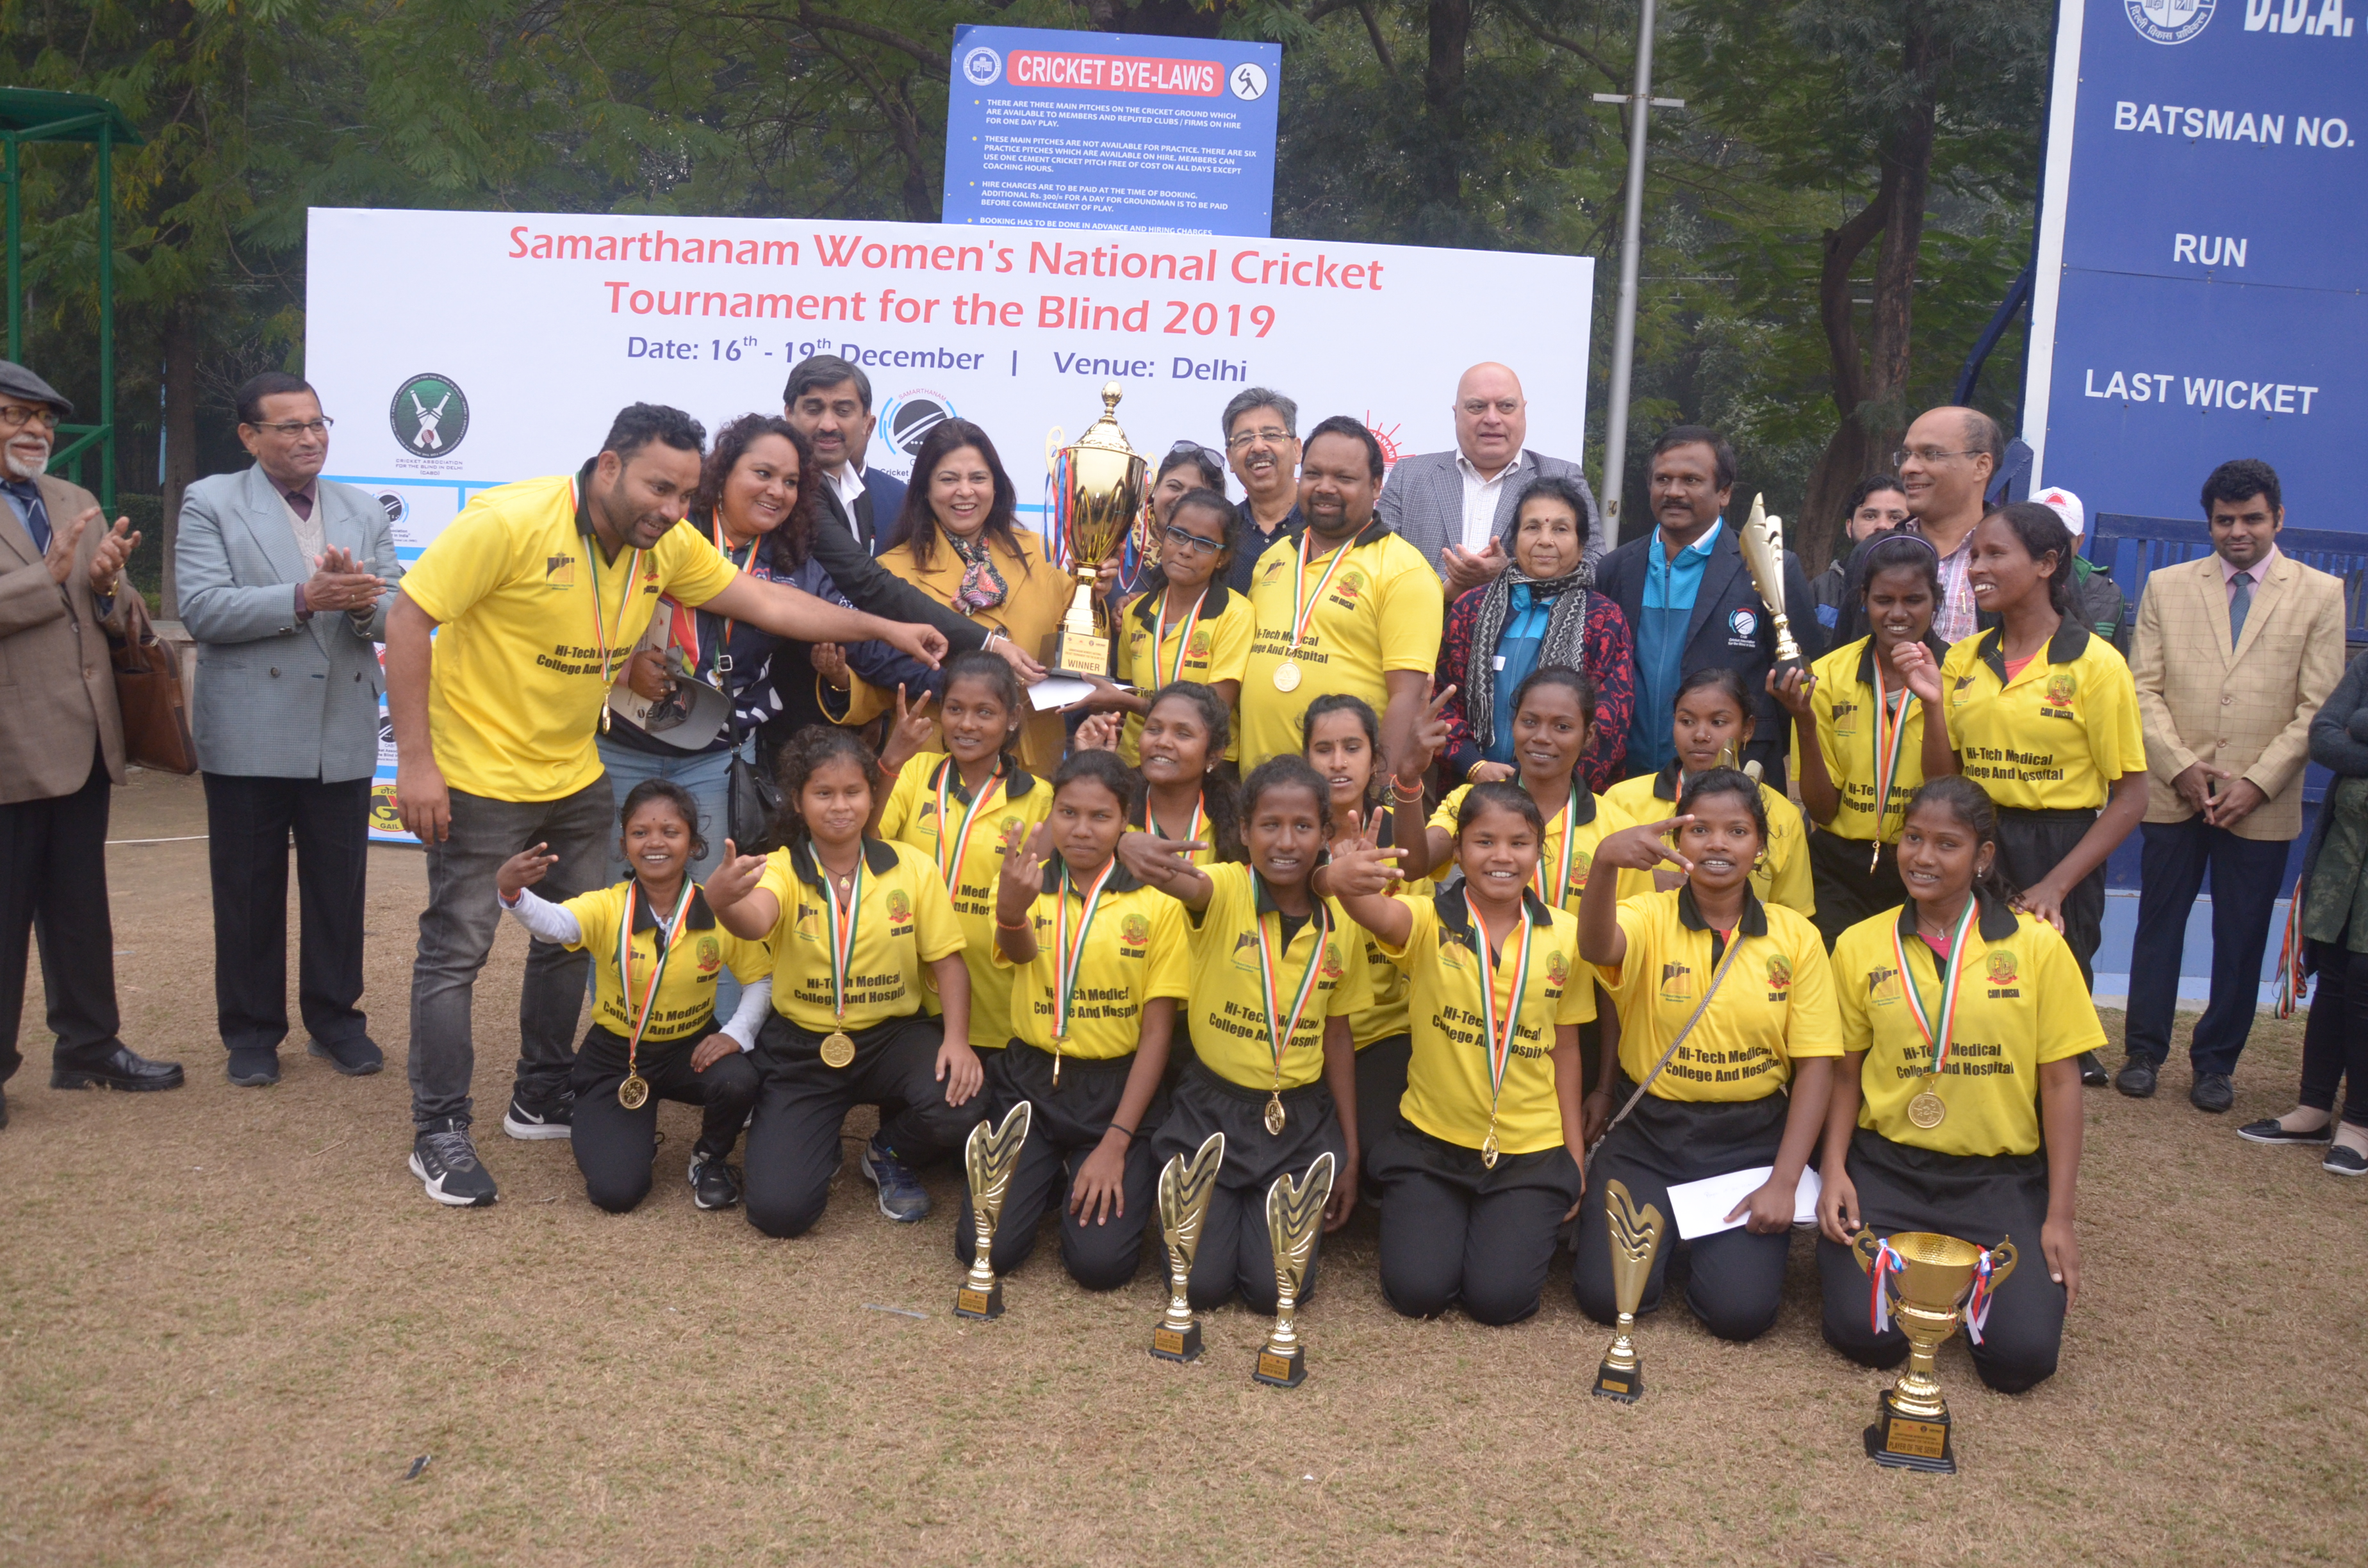 Odisha crowned inaugural champions of Samarthanam Women's National Cricket Tournament for the Blind – 2019